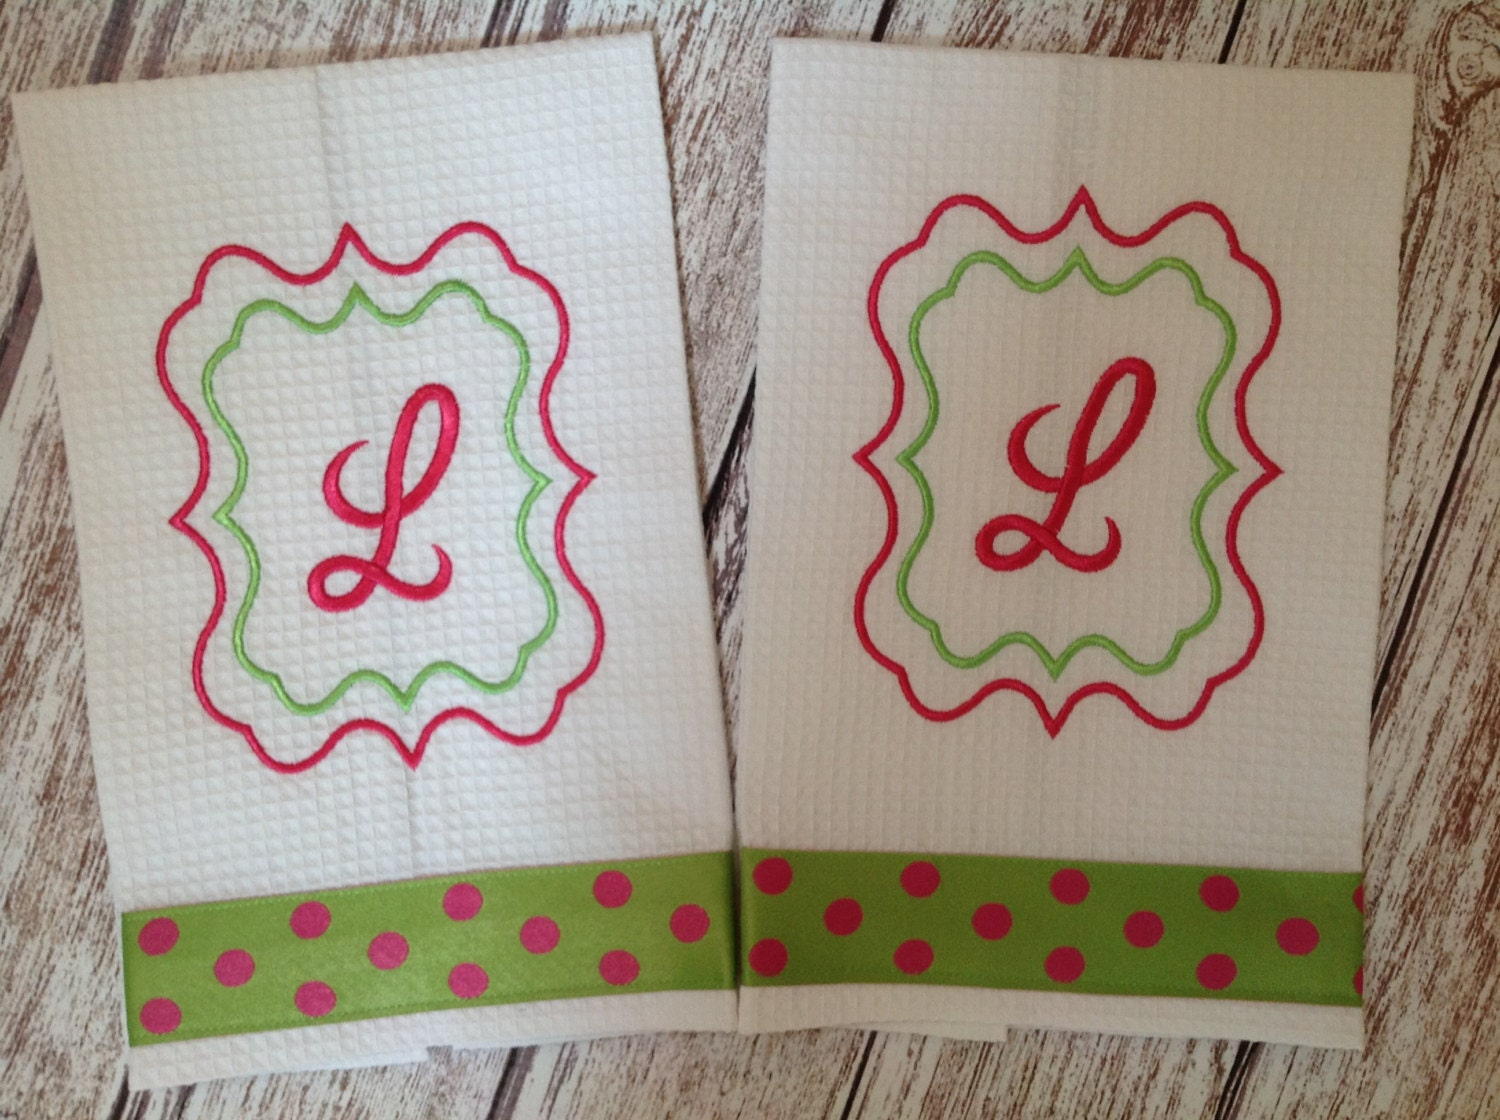 Monogrammed Kitchen Hand Towels With A Scroll Border Frame Set